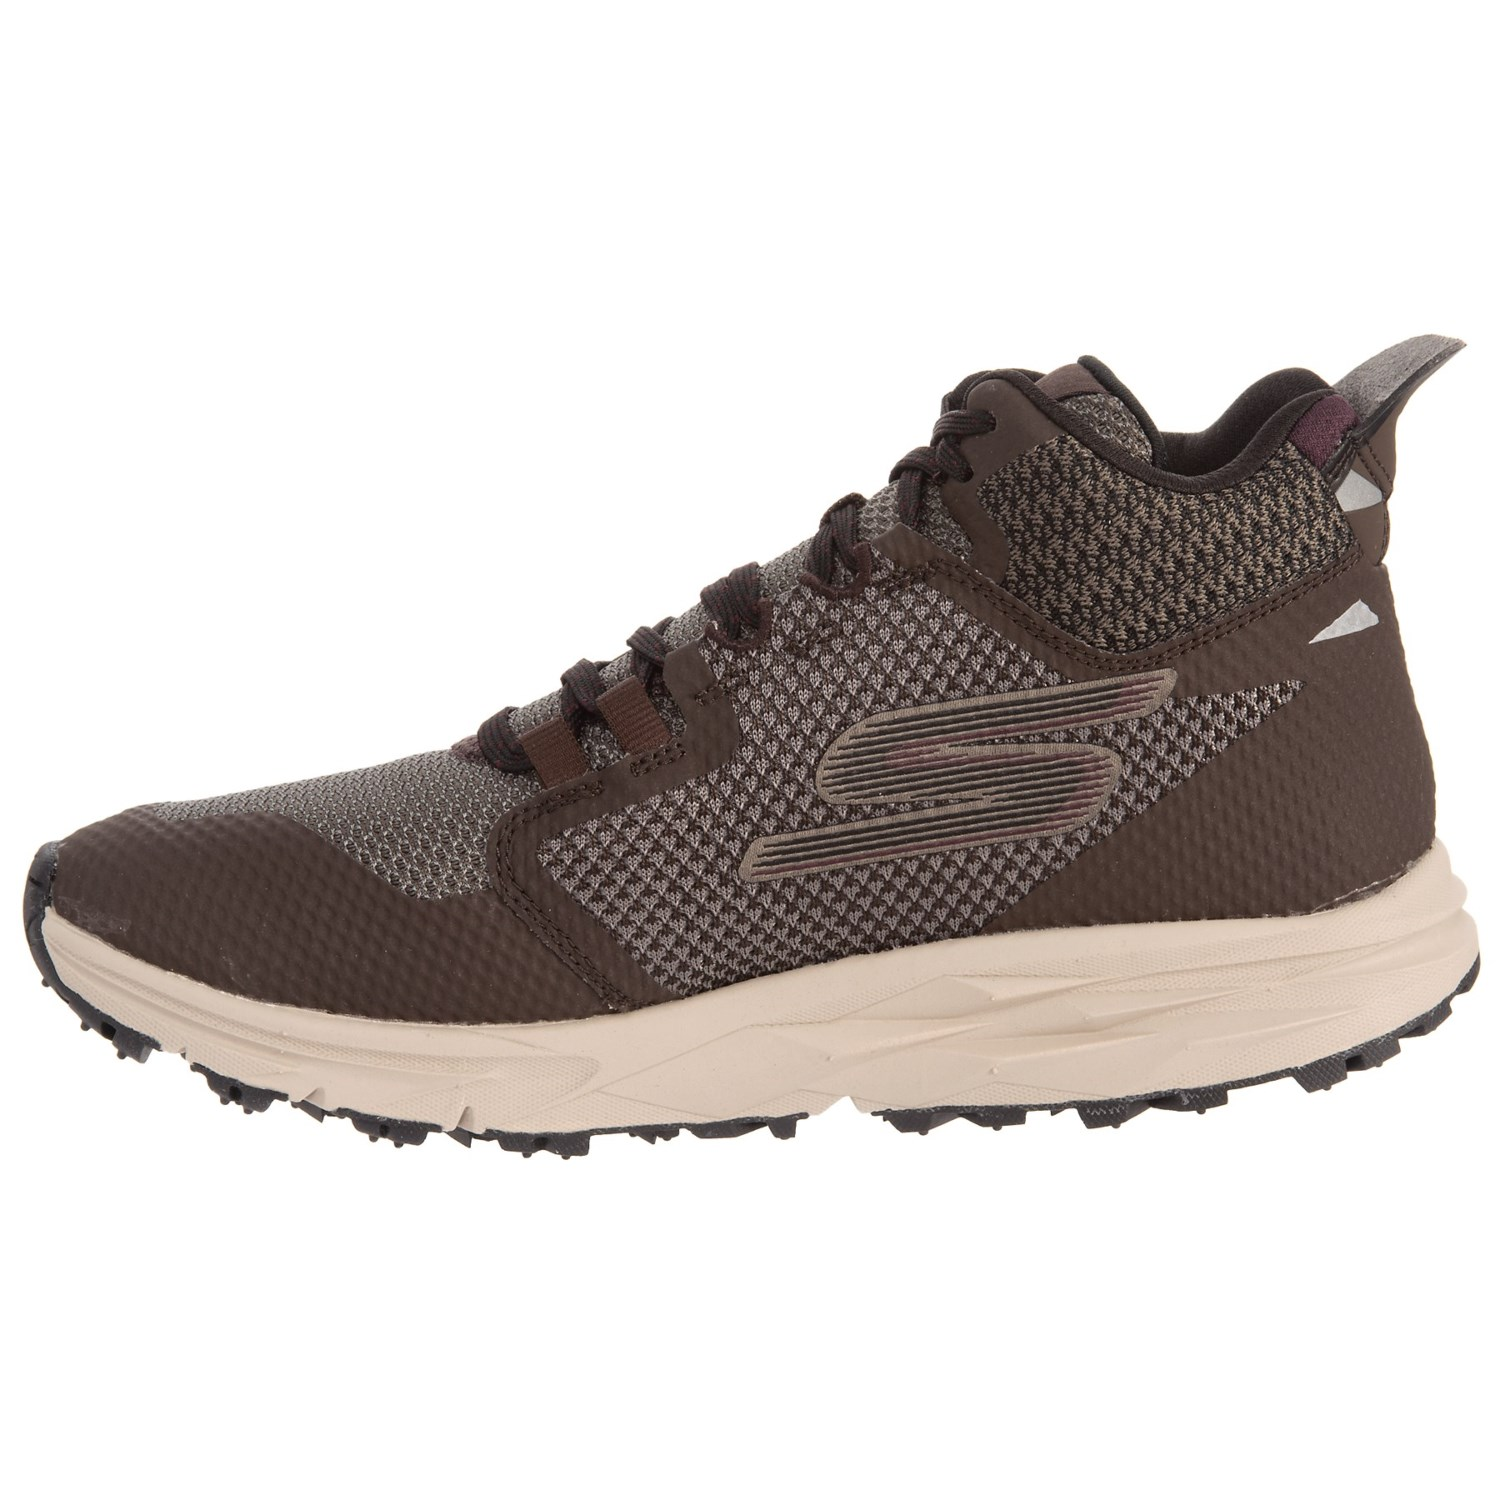 f4cd19883e95 Skechers GOtrail 2 Grip Trail Running Shoes (For Women) - Save 55%